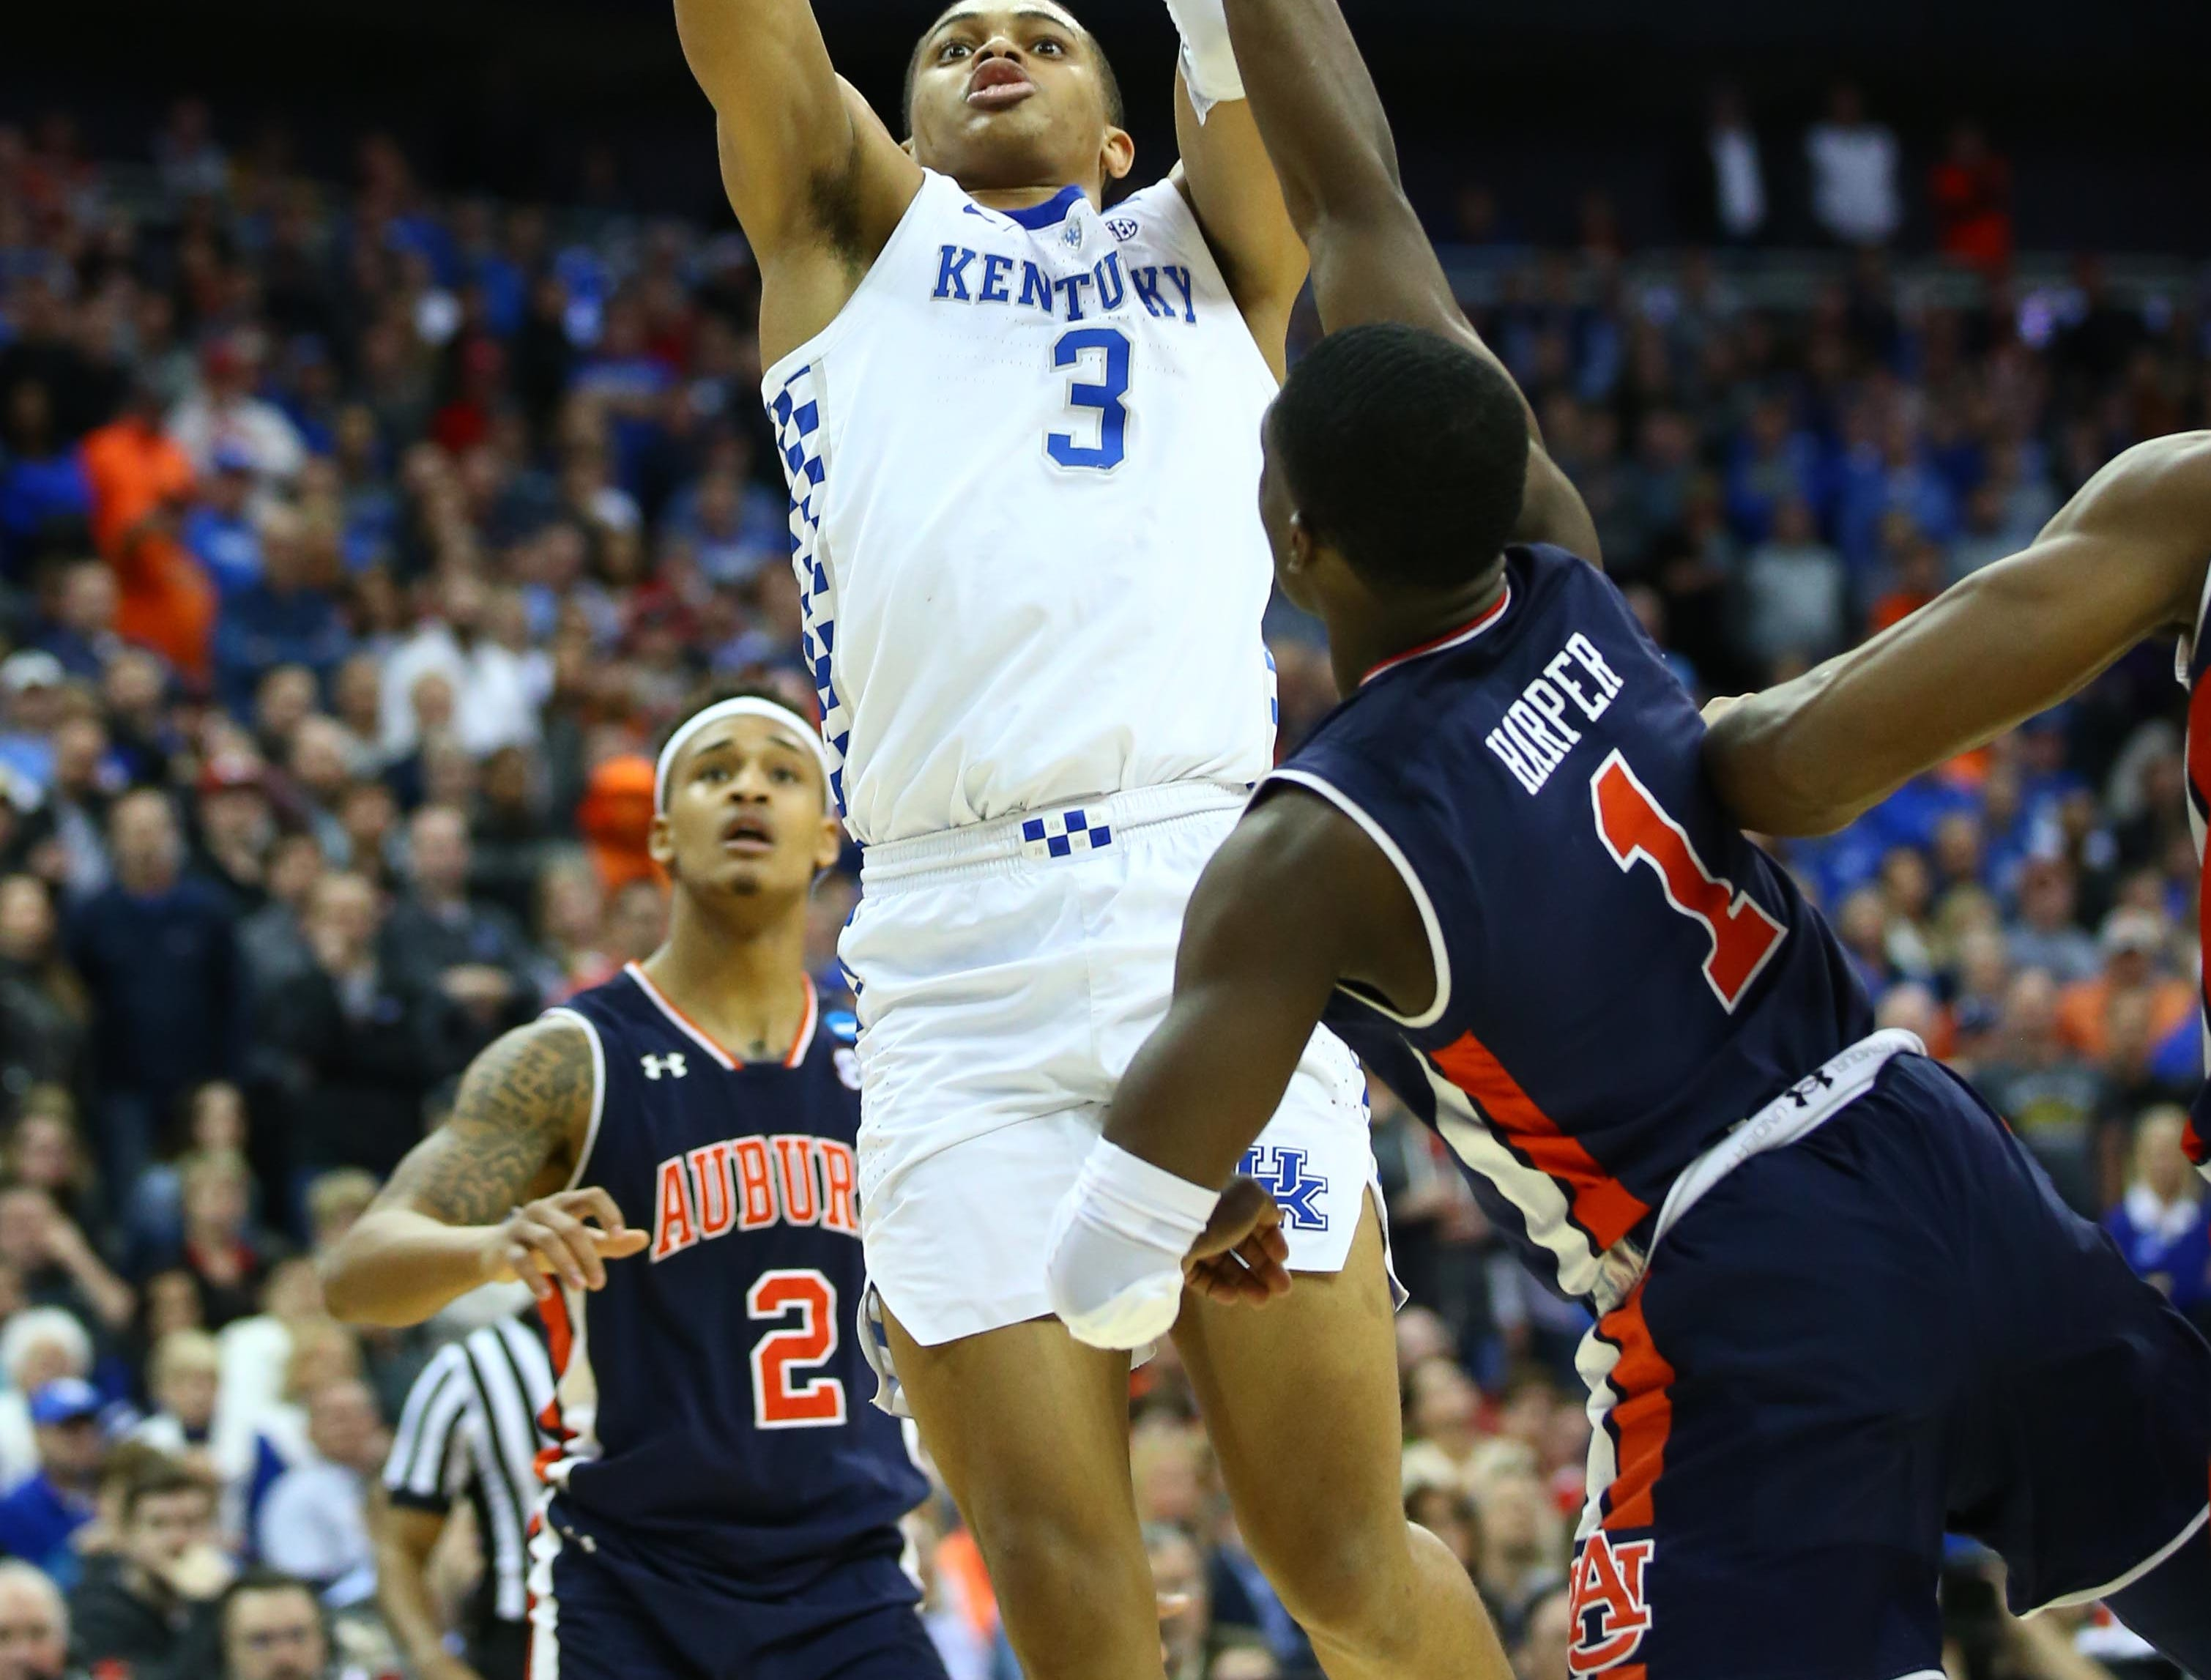 Mar 31, 2019; Kansas City, MO, United States; Kentucky Wildcats guard Keldon Johnson (3) shoots over Auburn Tigers guard Jared Harper (1) during the second half in the championship game of the midwest regional of the 2019 NCAA Tournament at Sprint Center. Mandatory Credit: Jay Biggerstaff-USA TODAY Sports